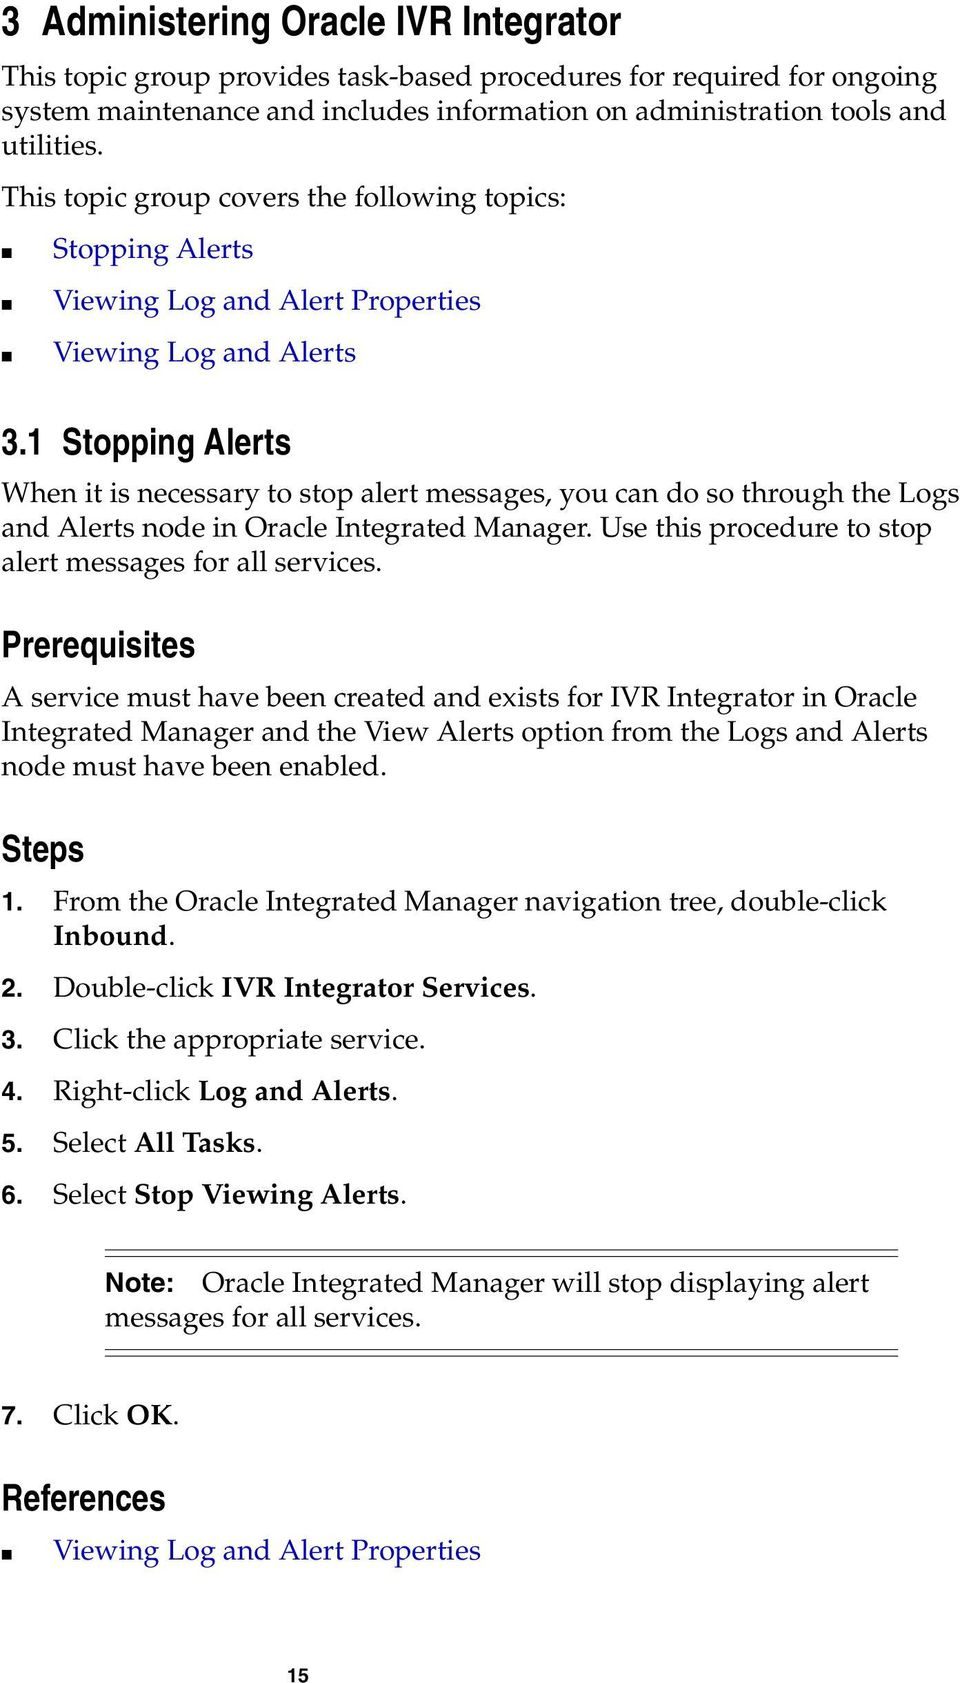 1 Stopping Alerts When it is necessary to stop alert messages, you can do so through the Logs and Alerts node in Oracle Integrated Manager. Use this procedure to stop alert messages for all services.